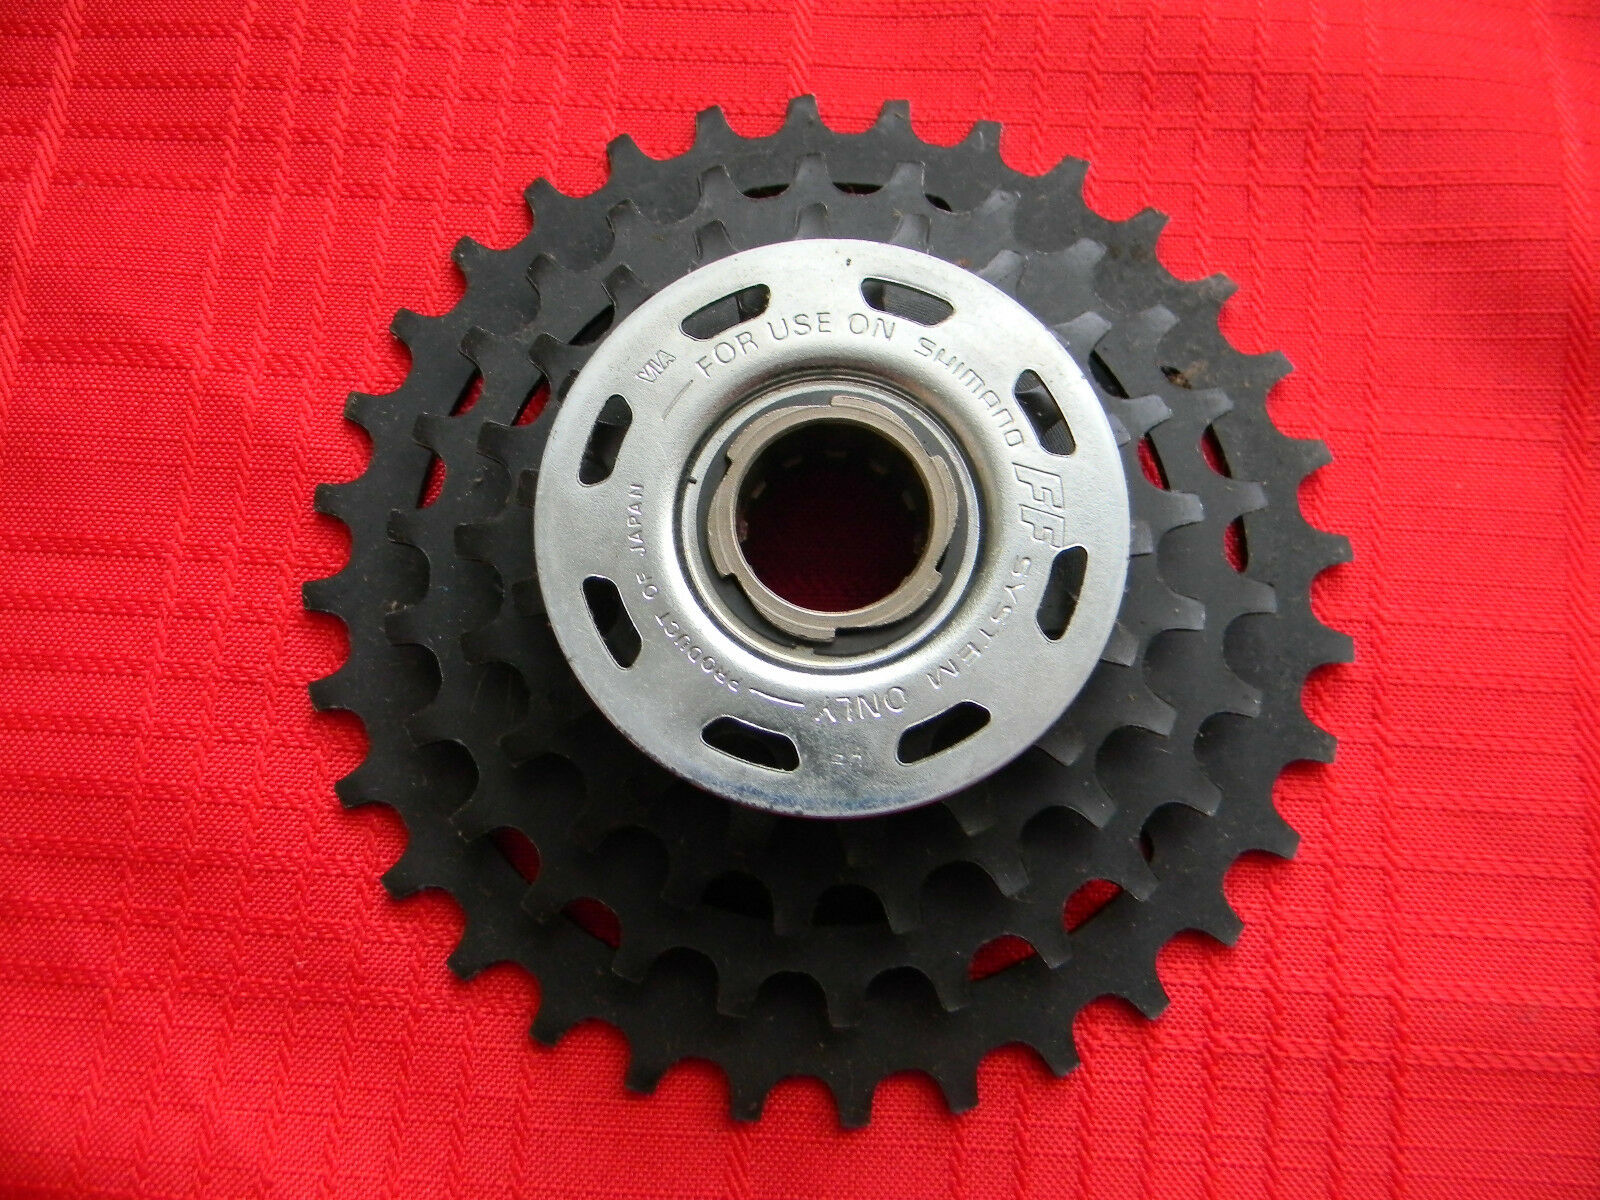 VINTAGE SHIMANO FF  SYSTEM 14 X 28 MULTIPLE FREEWHEEL, 5 SPEED  shop online today